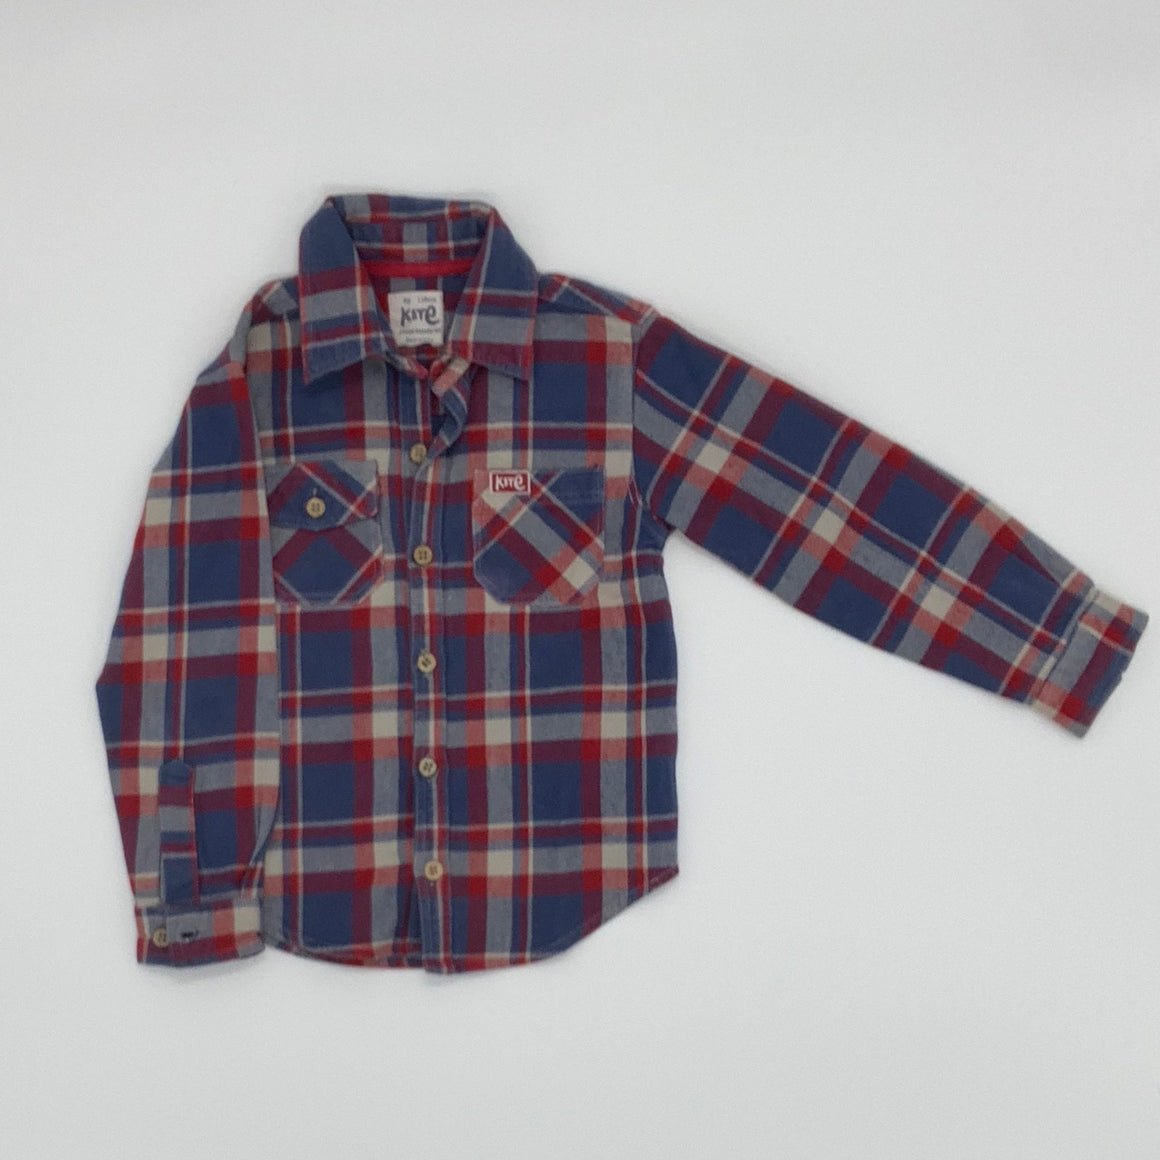 Gently Worn Kite shirt size 5-6 years